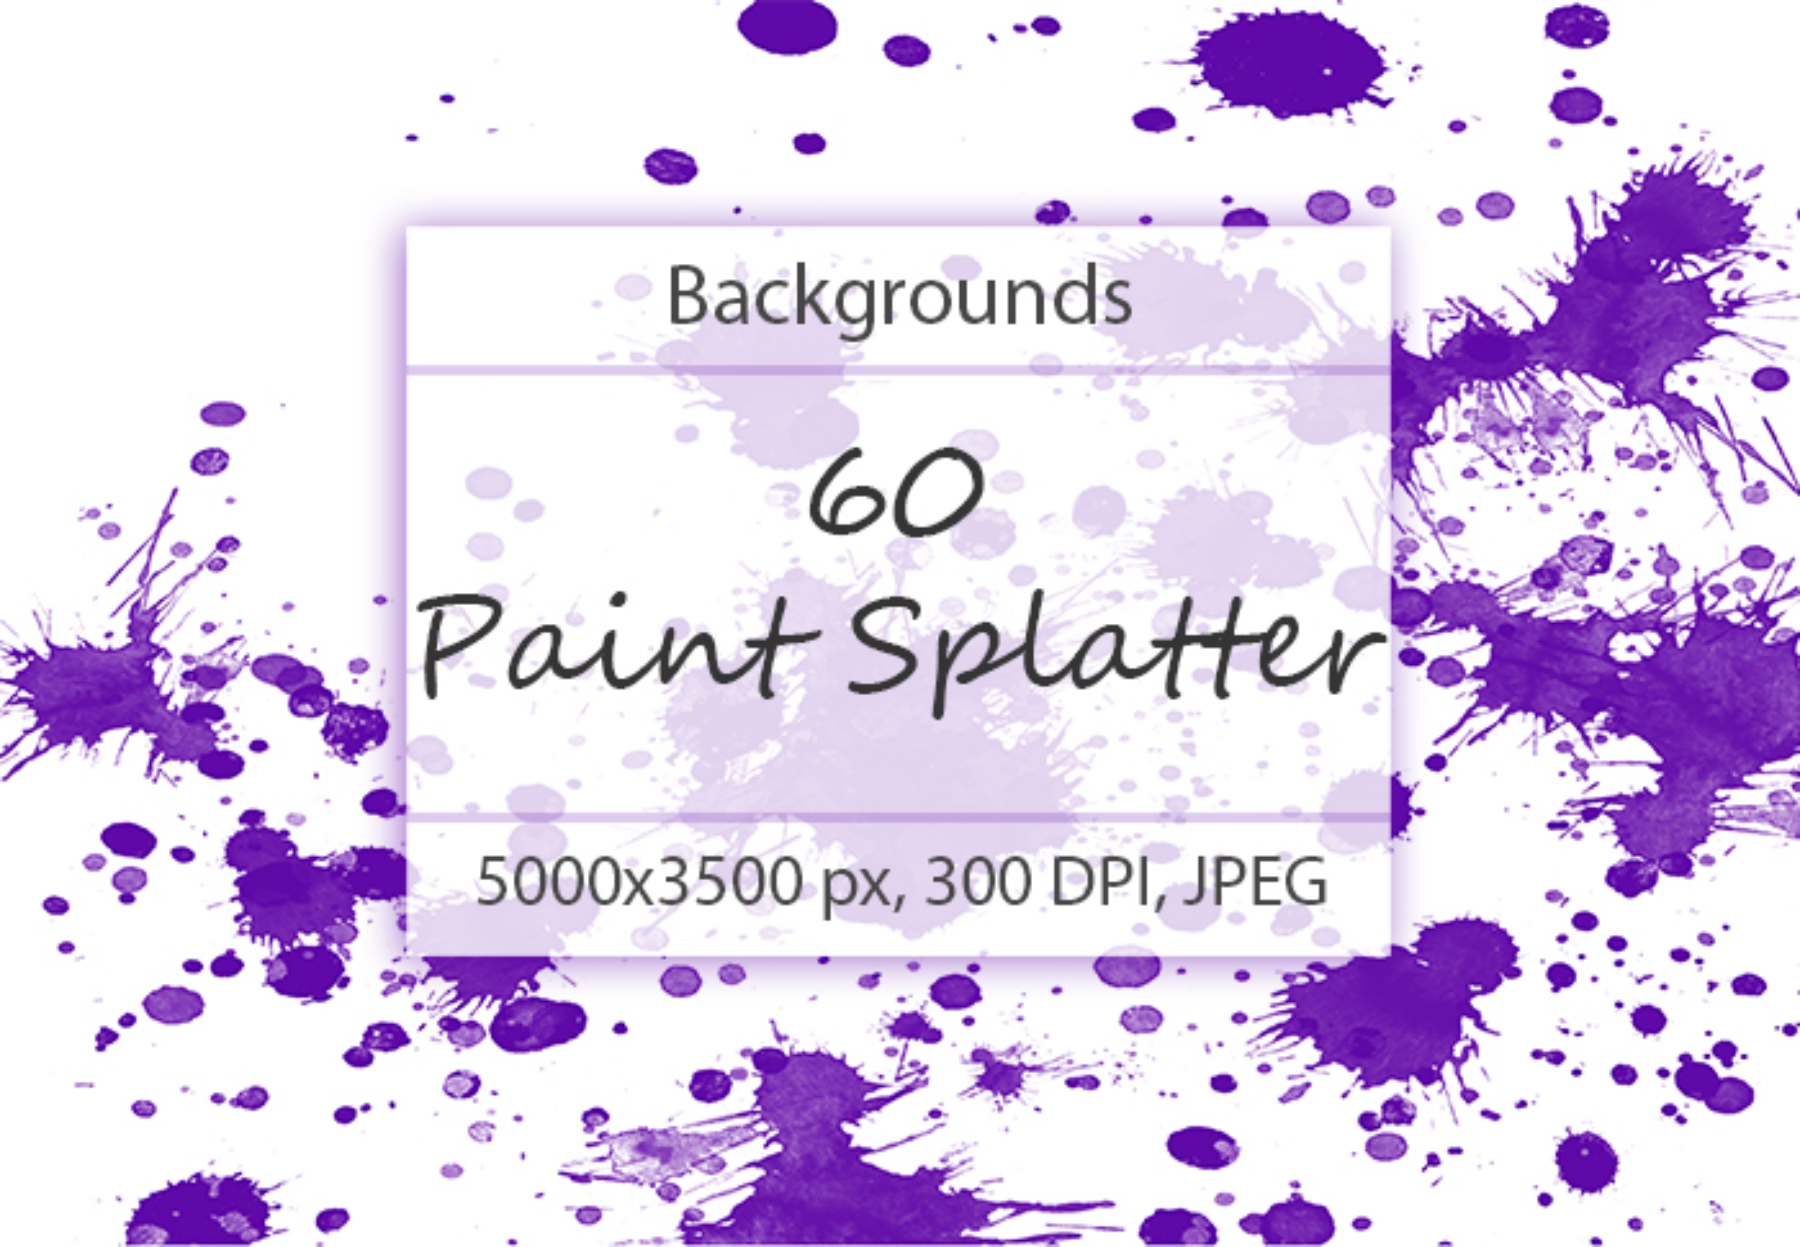 2000 High Resolution Backgrounds example image 6